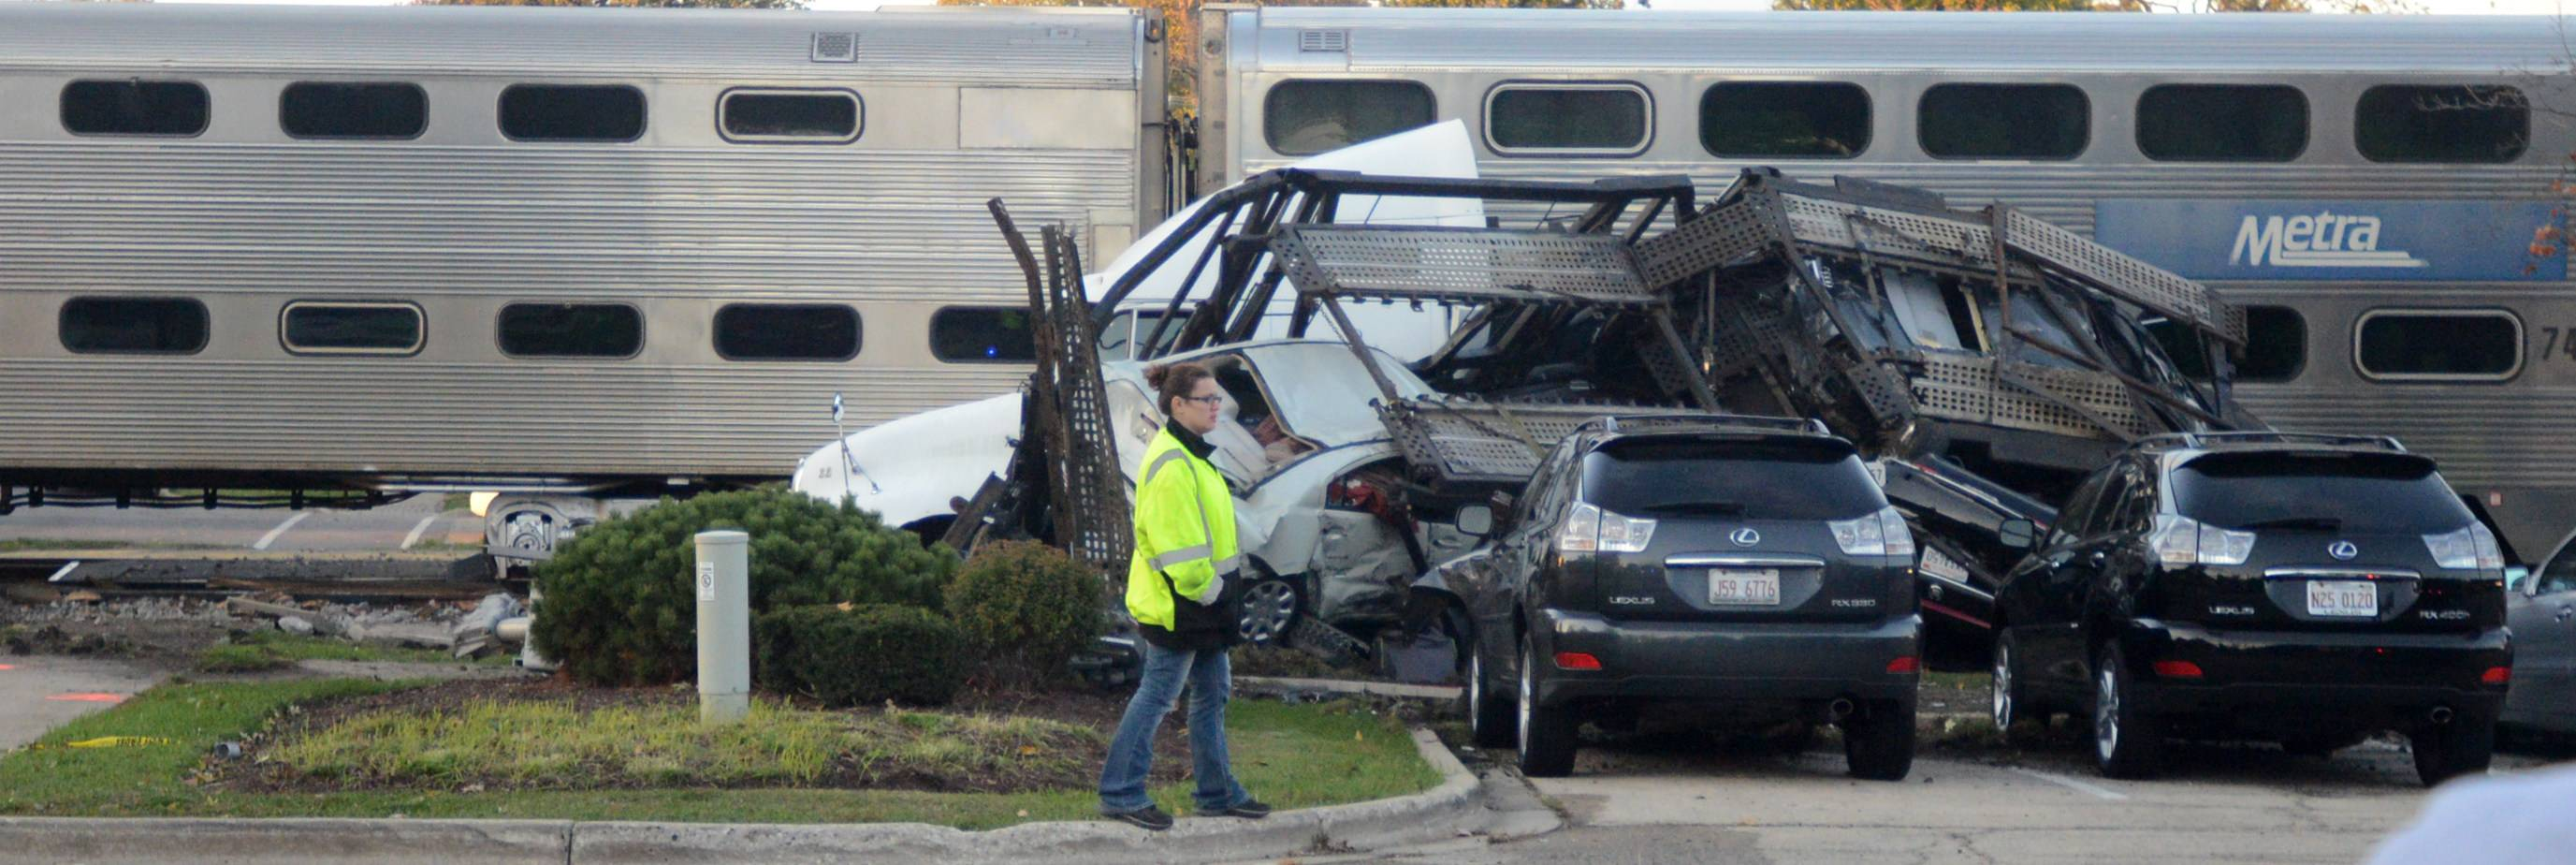 Collisions between trains and cars or pedestrians — a fact of life in the suburbs — also plague the international community. Prevention was the subject of a global symposium last week in Illinois.